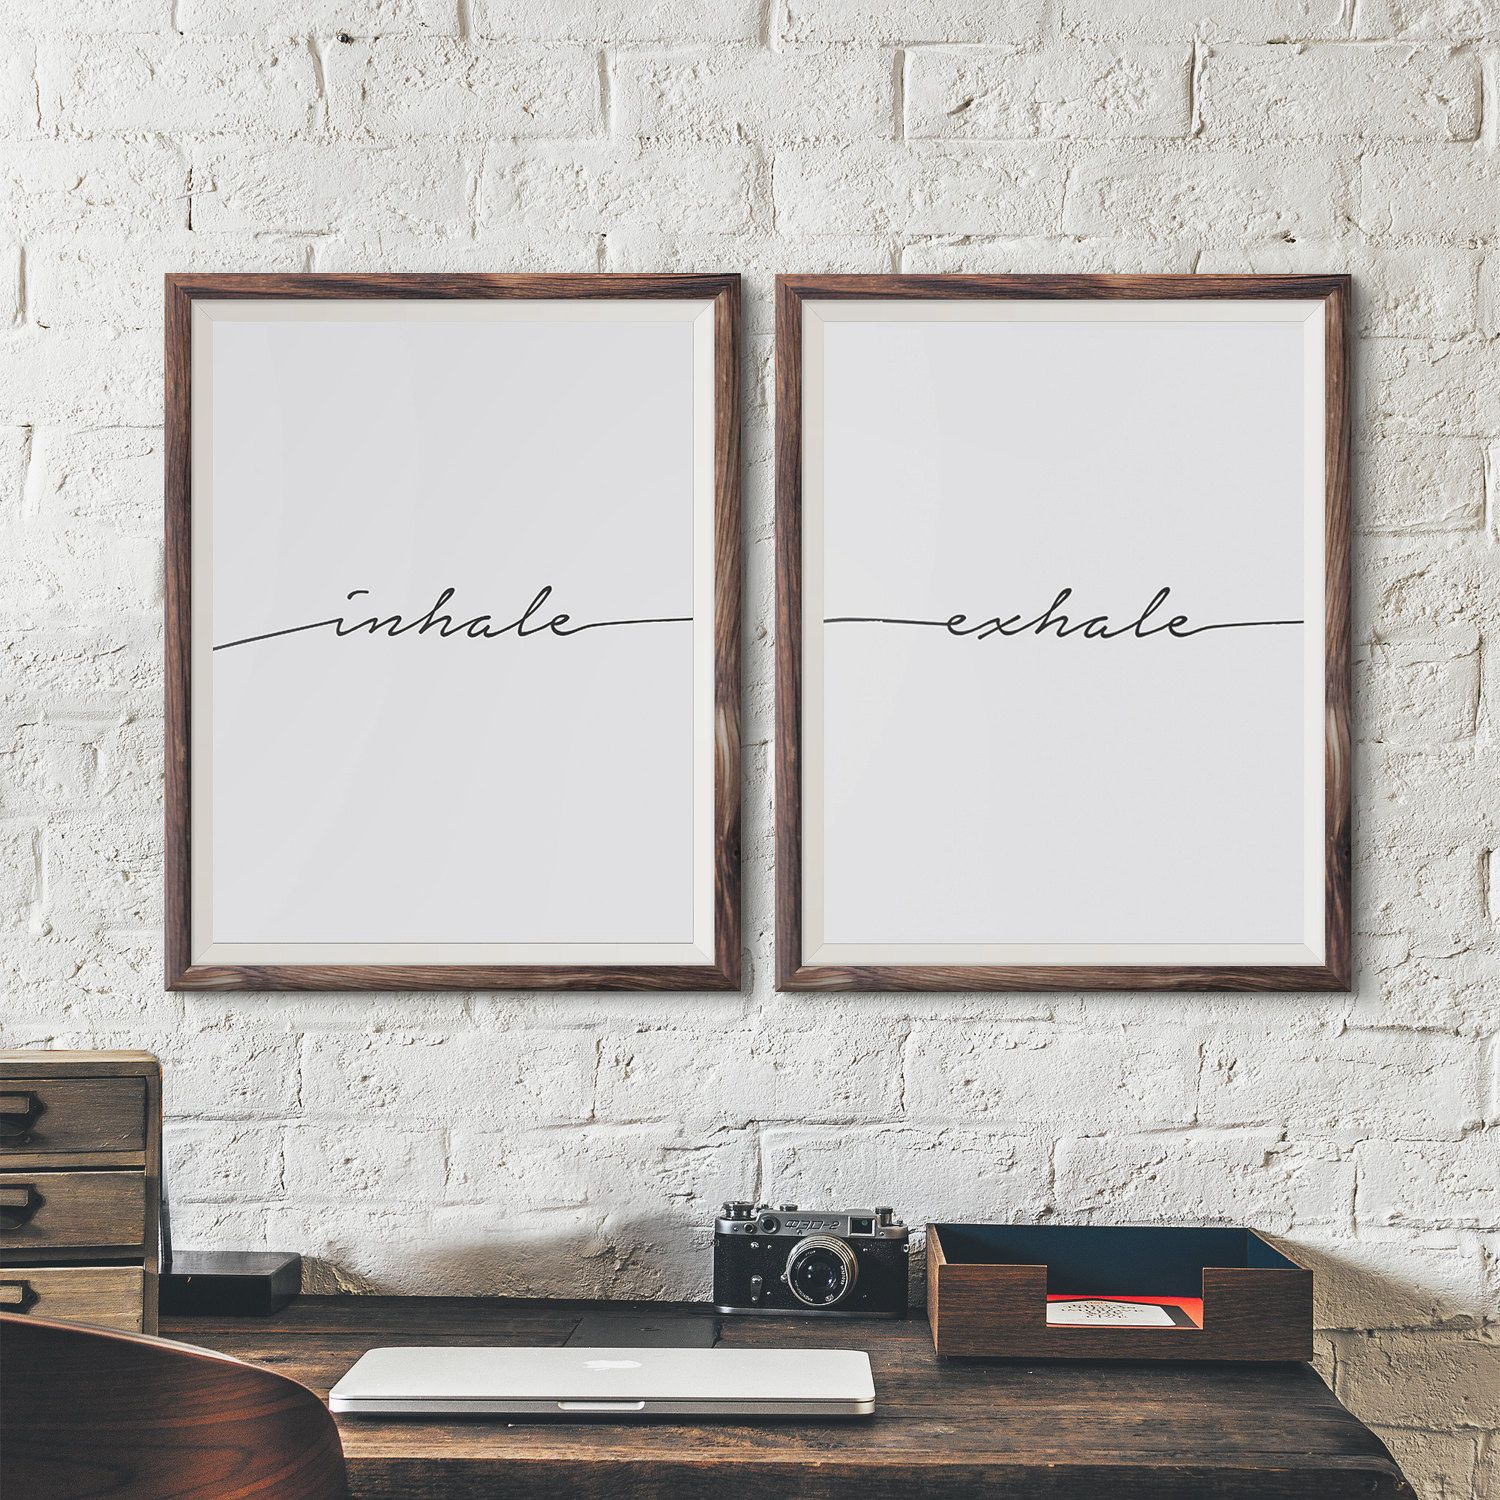 Inhale Exhale Print Breathe Minimalist Typography Art Inspirational Pilates Relaxation Gifts Yoga Wall